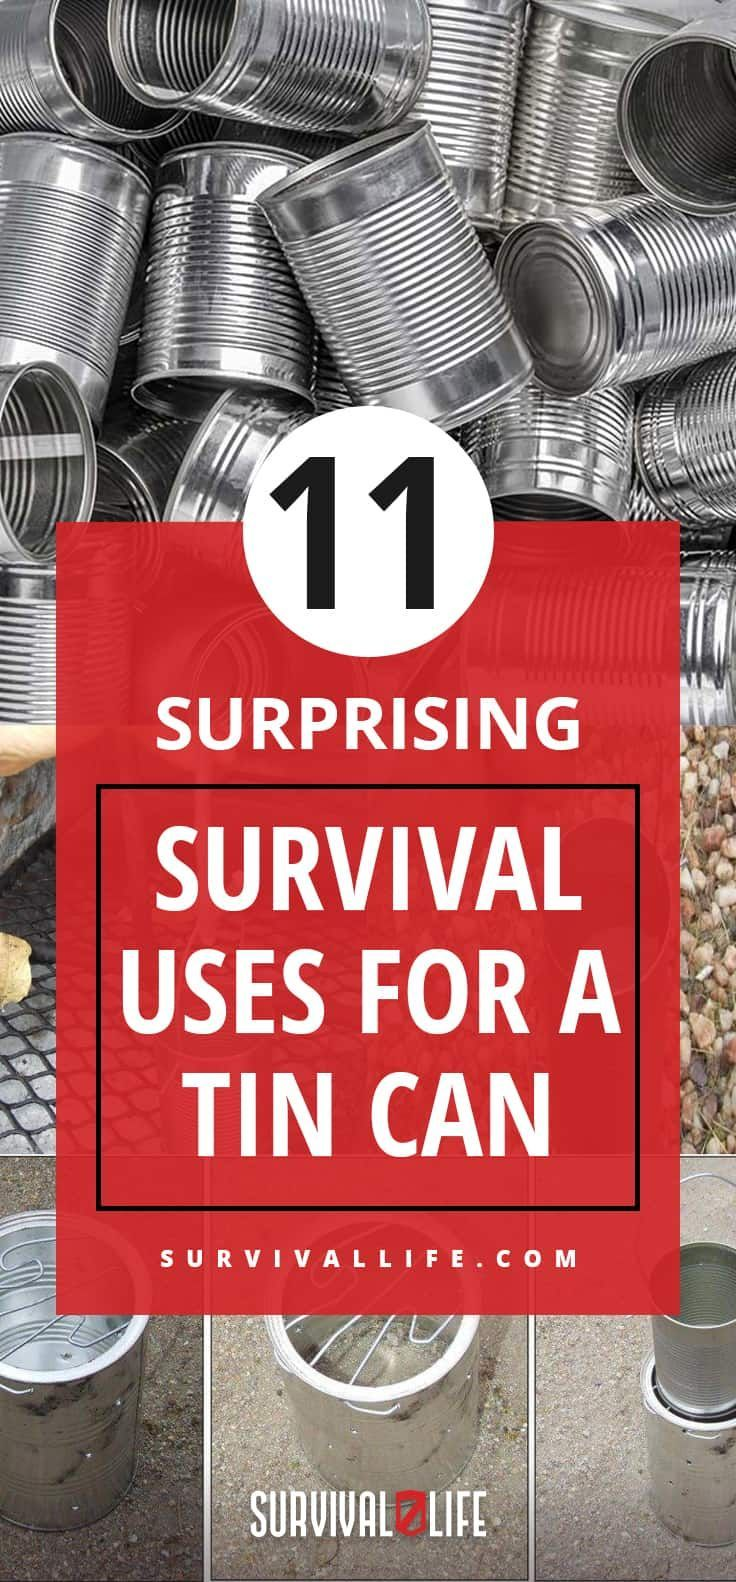 Survival Uses For A Tin Can | 11 Surprising Usage | Survival Life #tincans